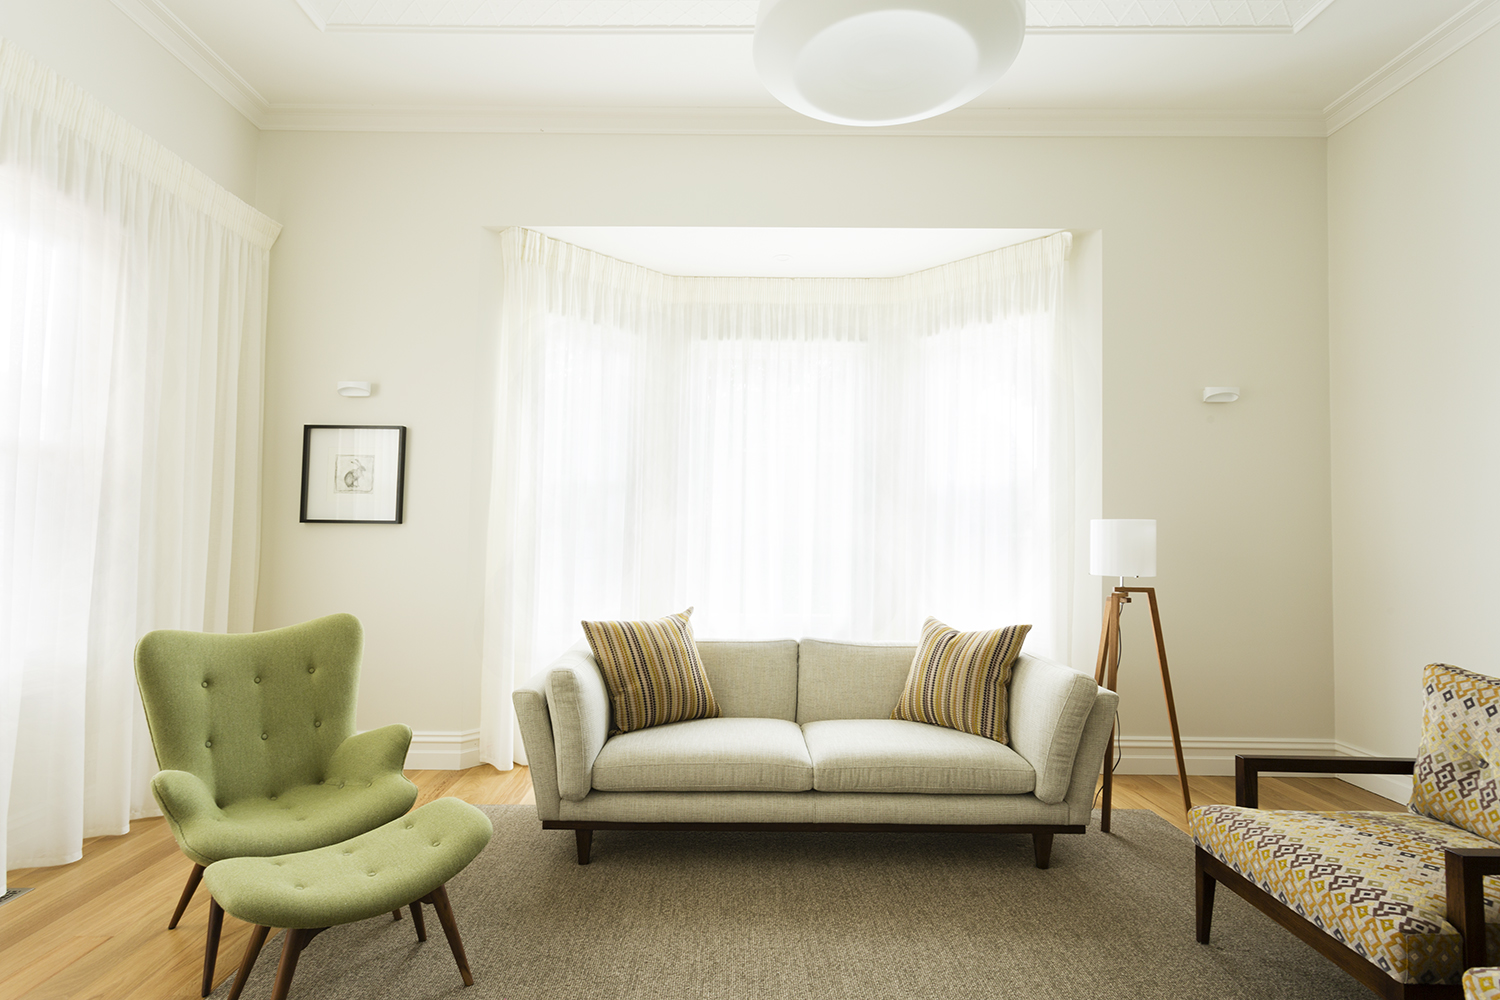 curtains, ripplefold curtains, sheer curtains, interior decorator, melbourne